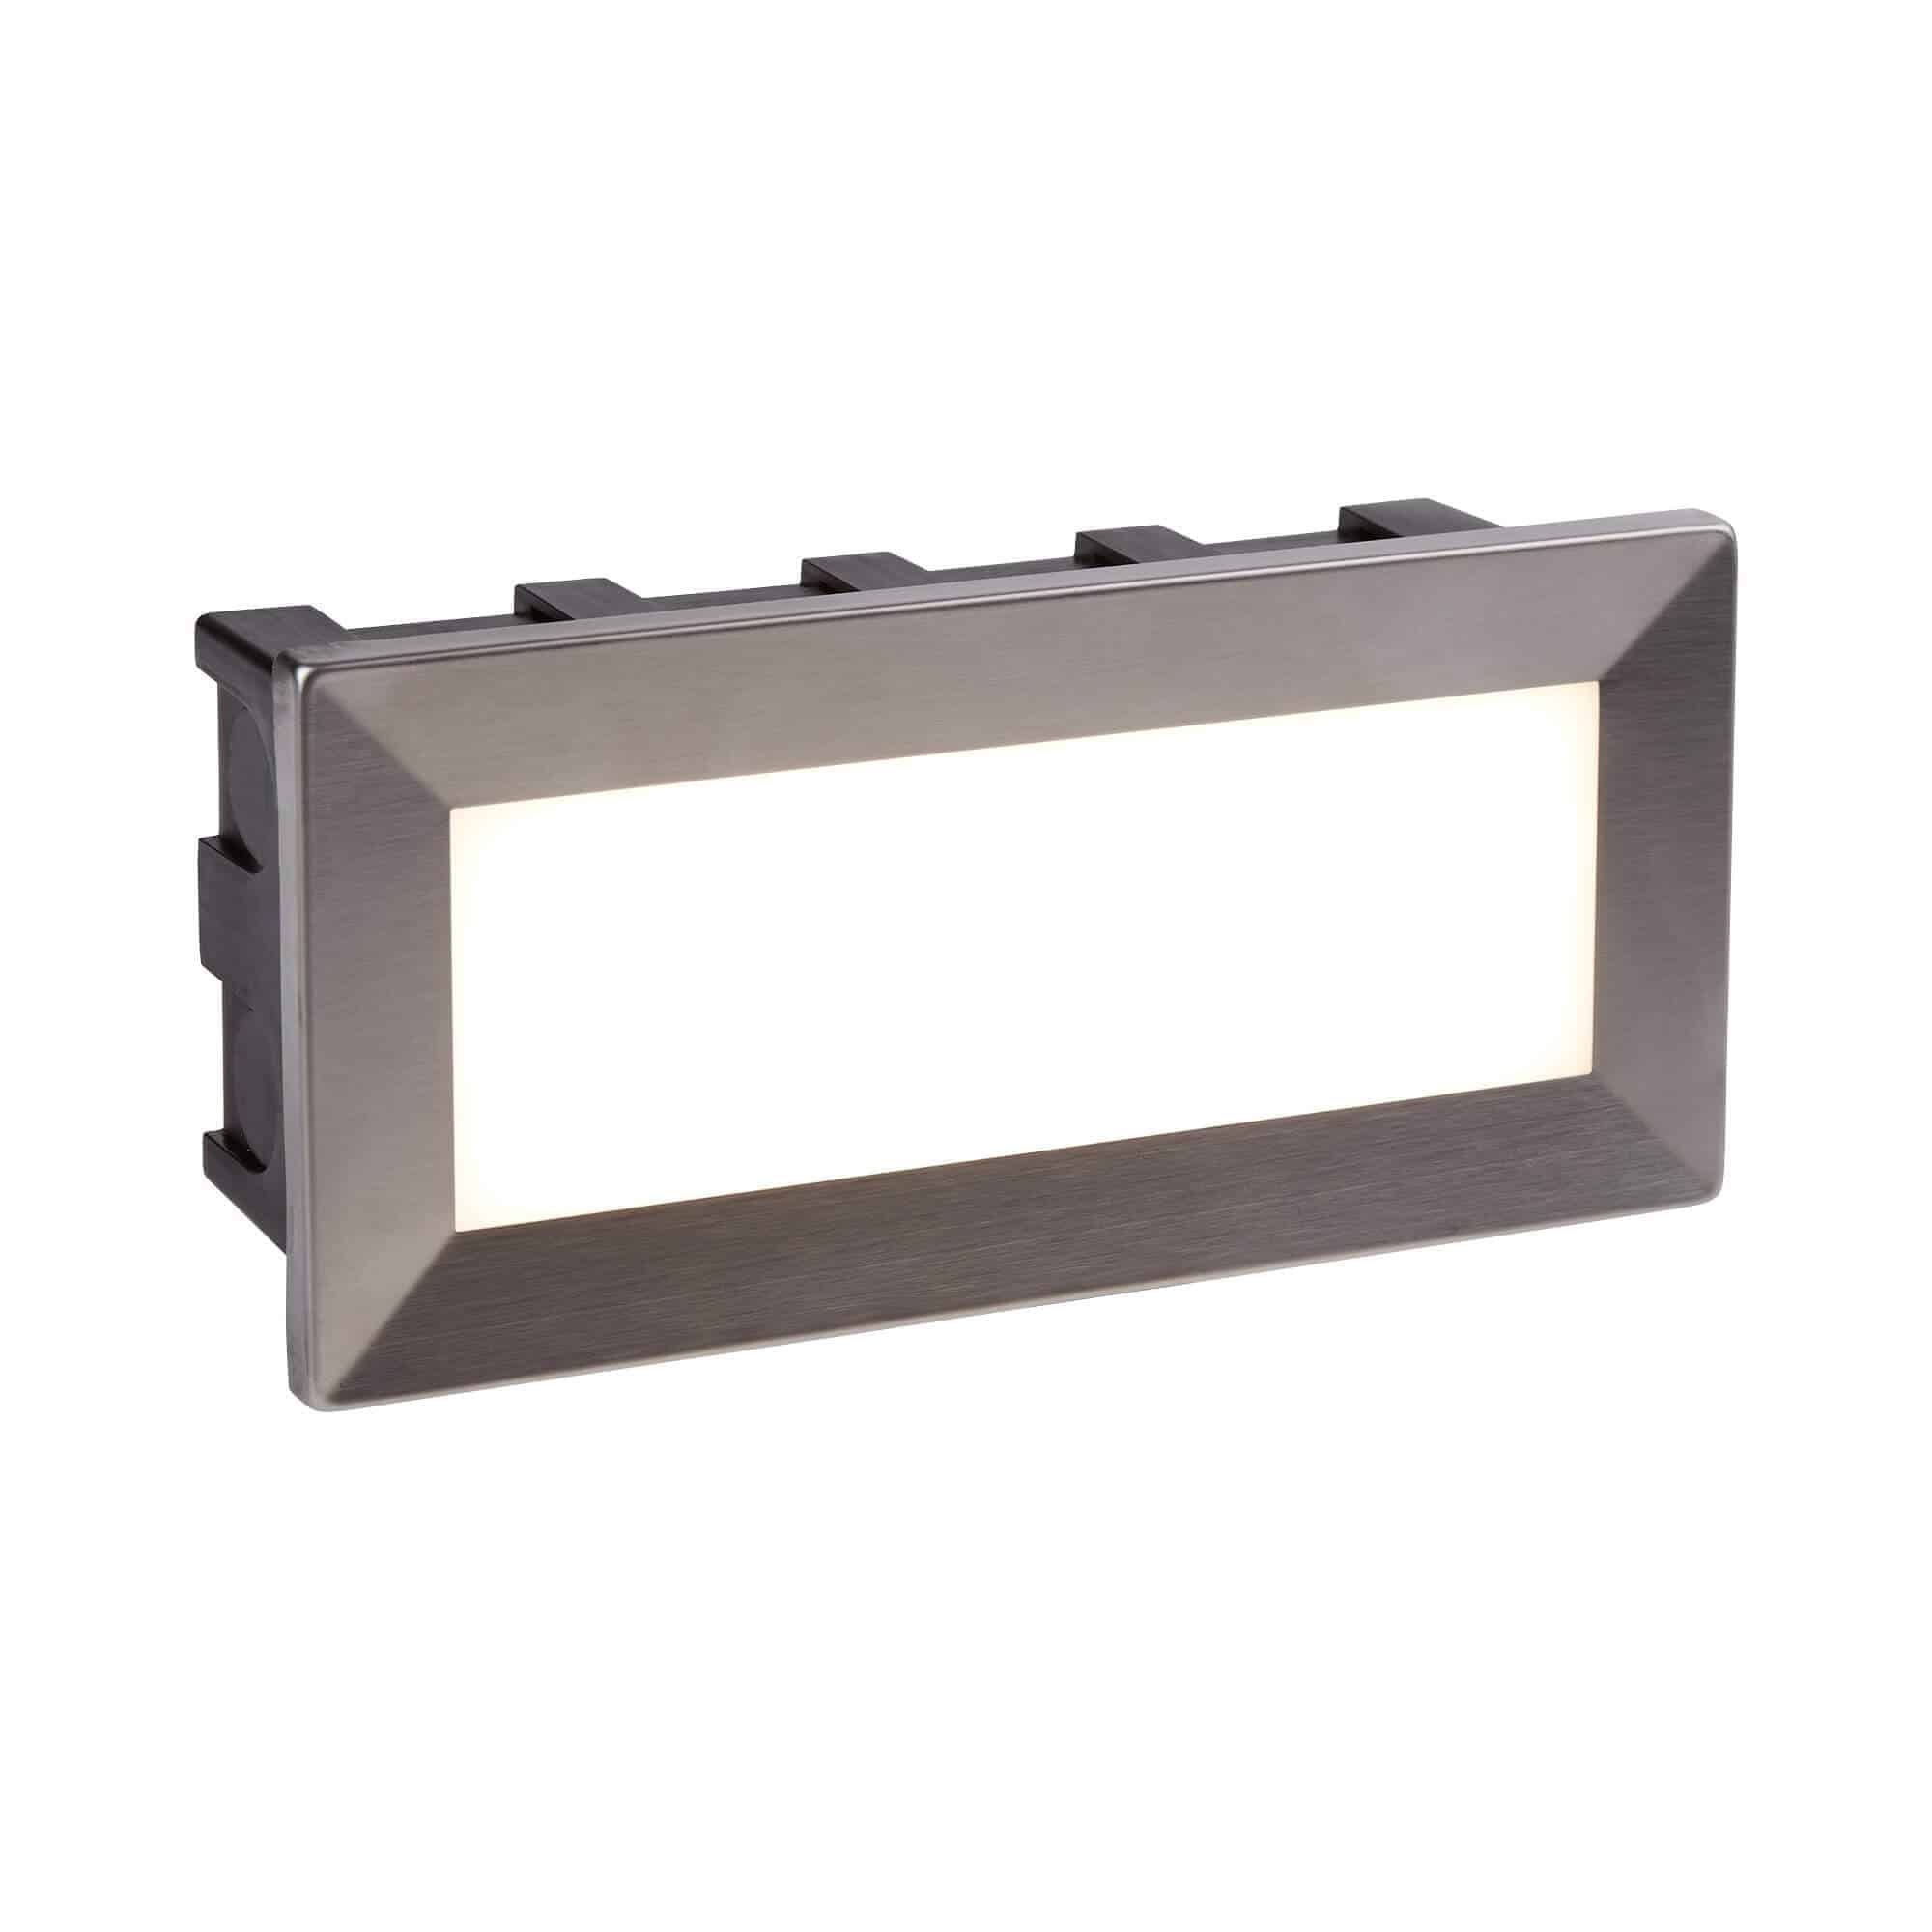 762 – Searchlight Ankle Stainless Steel LED Recessed Wall Light